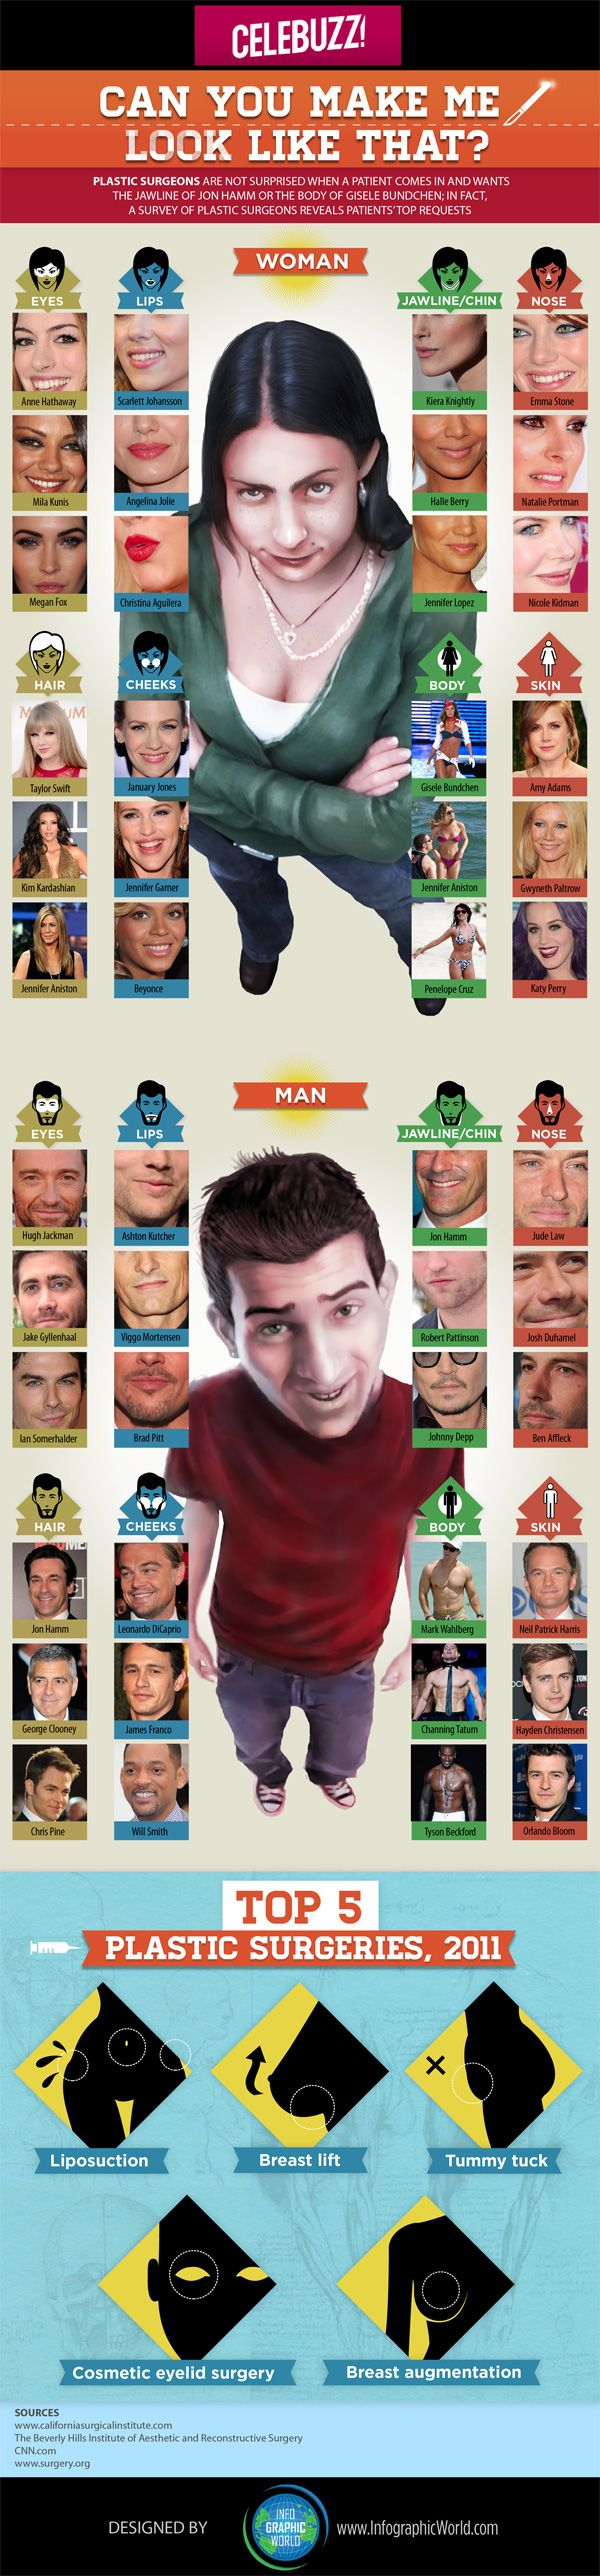 Celebrity Plastic Surgery: Which Famous Face Is Most Requested by Patients? (INFOGRAPHIC)